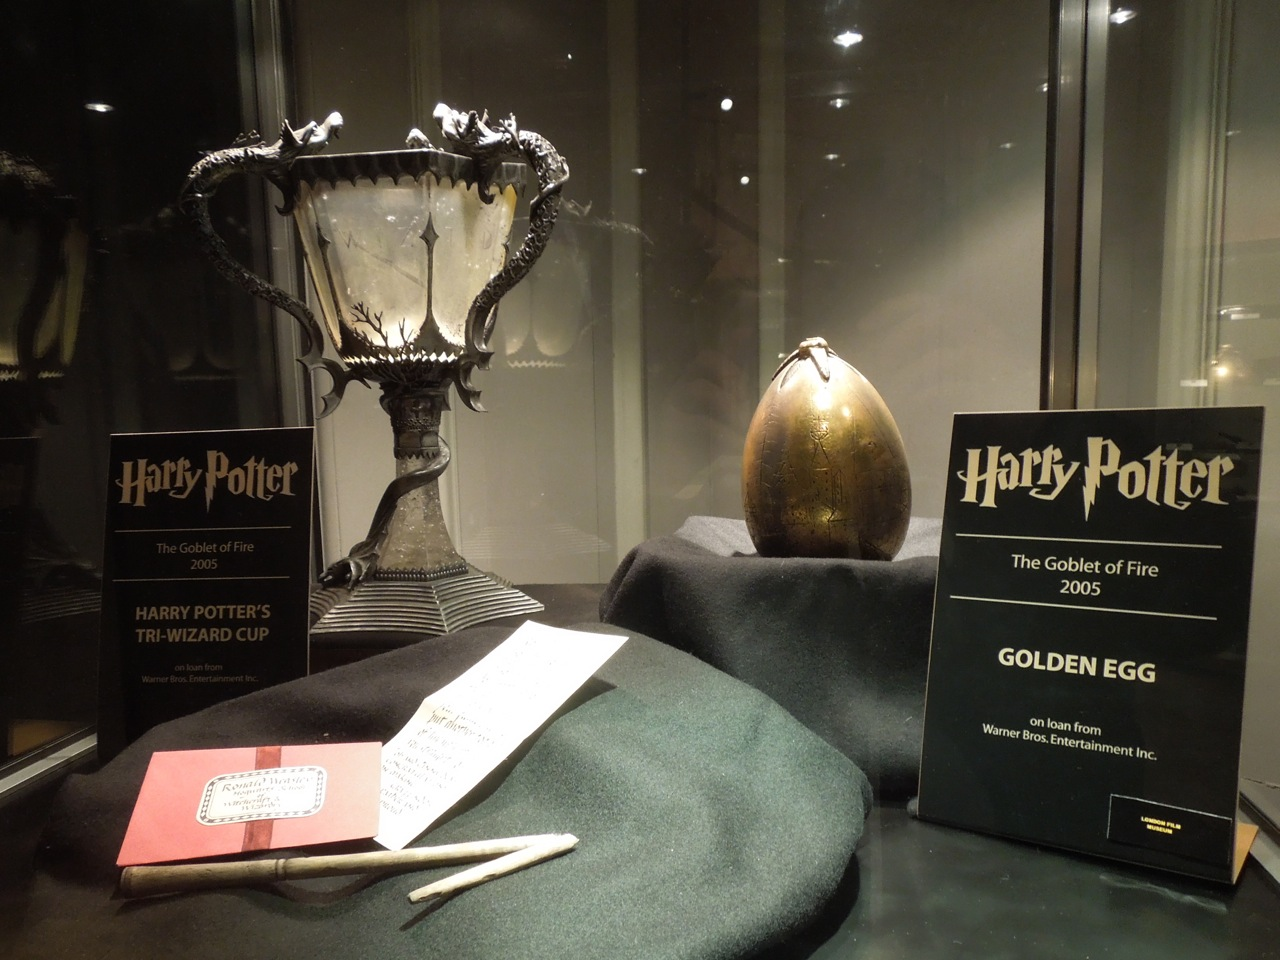 Harry Potter and the Goblet of Fire movie props on display ...